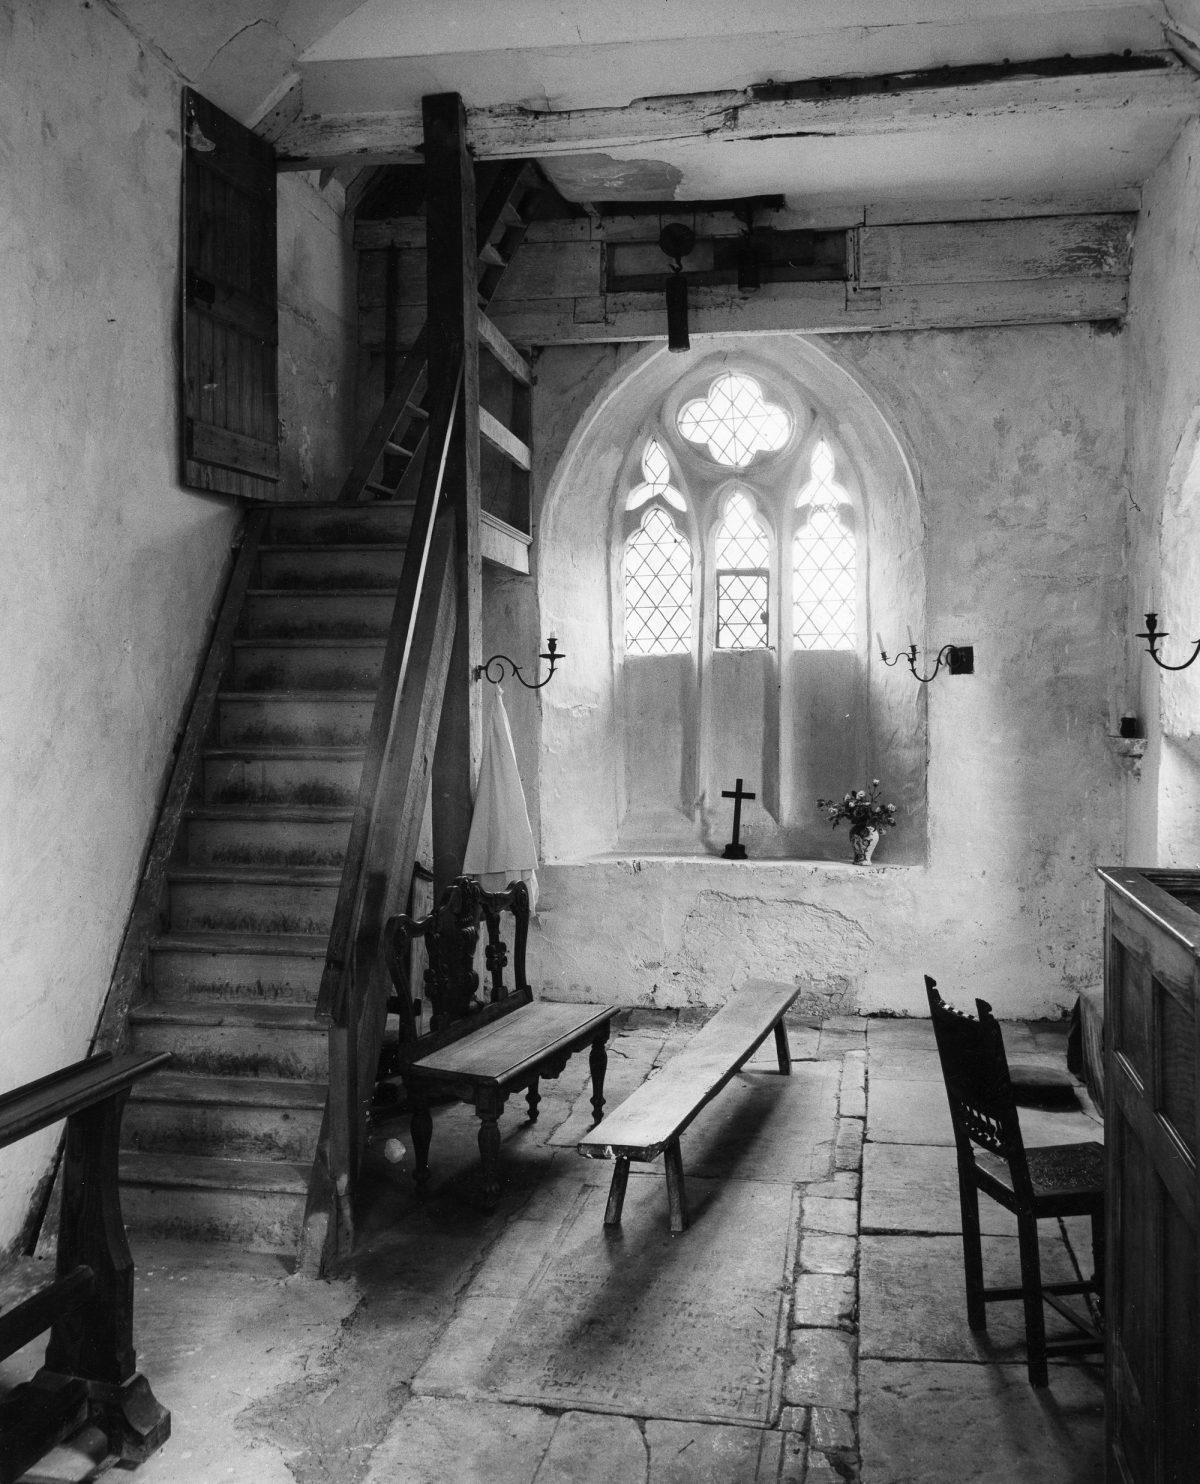 St_Lawrence__Didmarton__Gloucestershire__1962_(c)_Edwin_Smith__RIBA_Library_Photographs_Collection